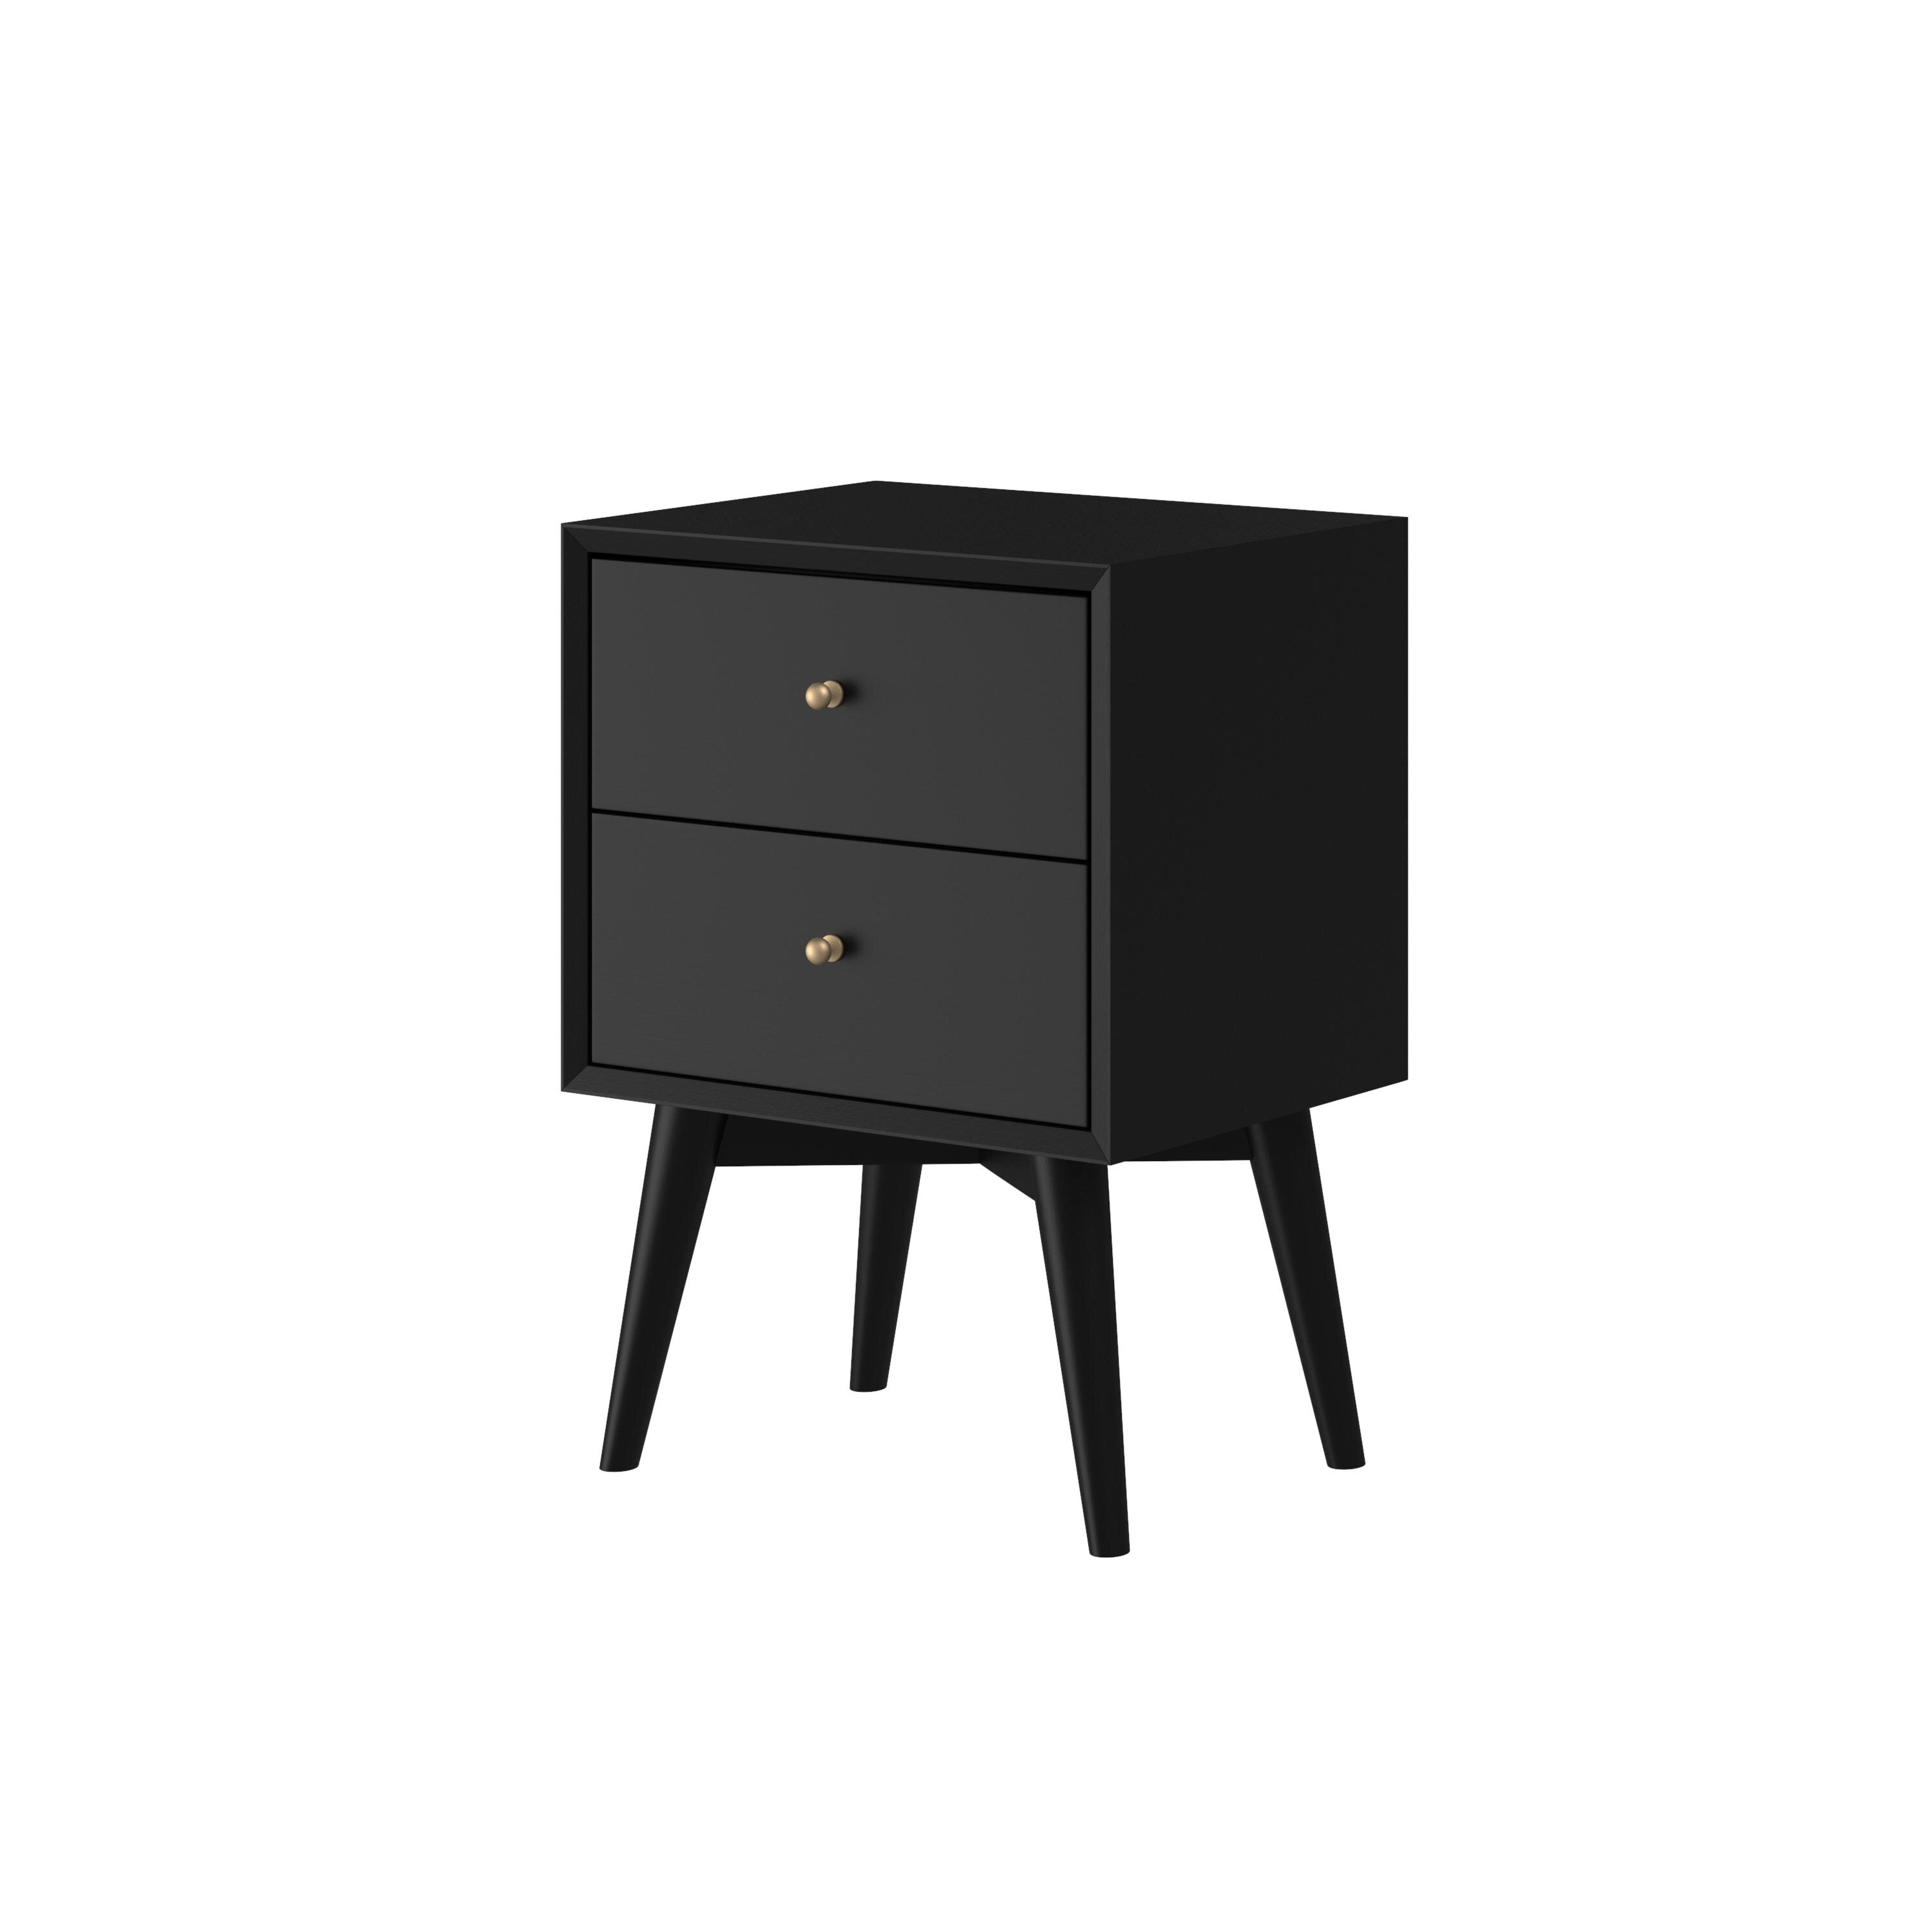 Black Nightstands You Ll Love In 2021 Wayfair